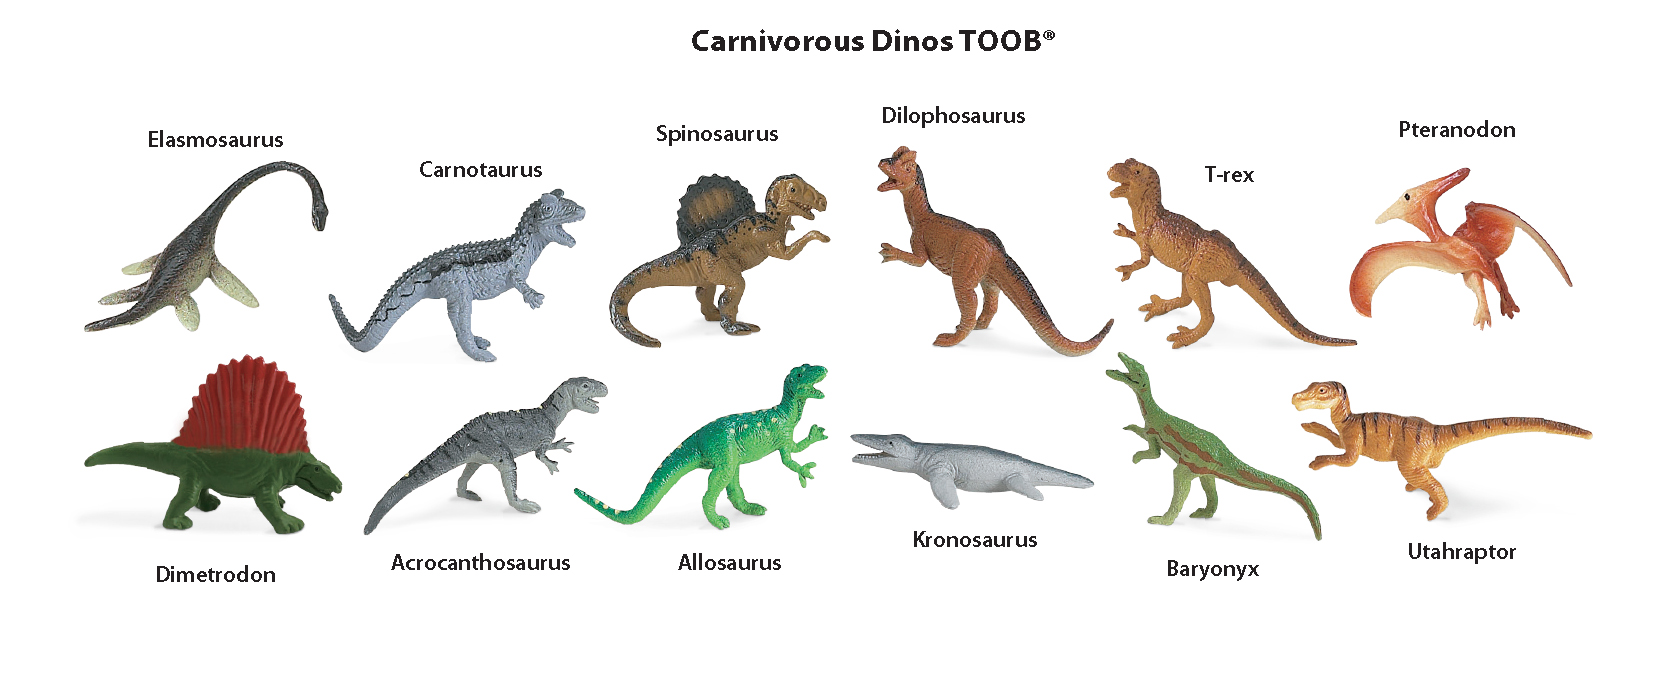 Carnivorous Dinos TOOB key (Image from Safari Ltd.)